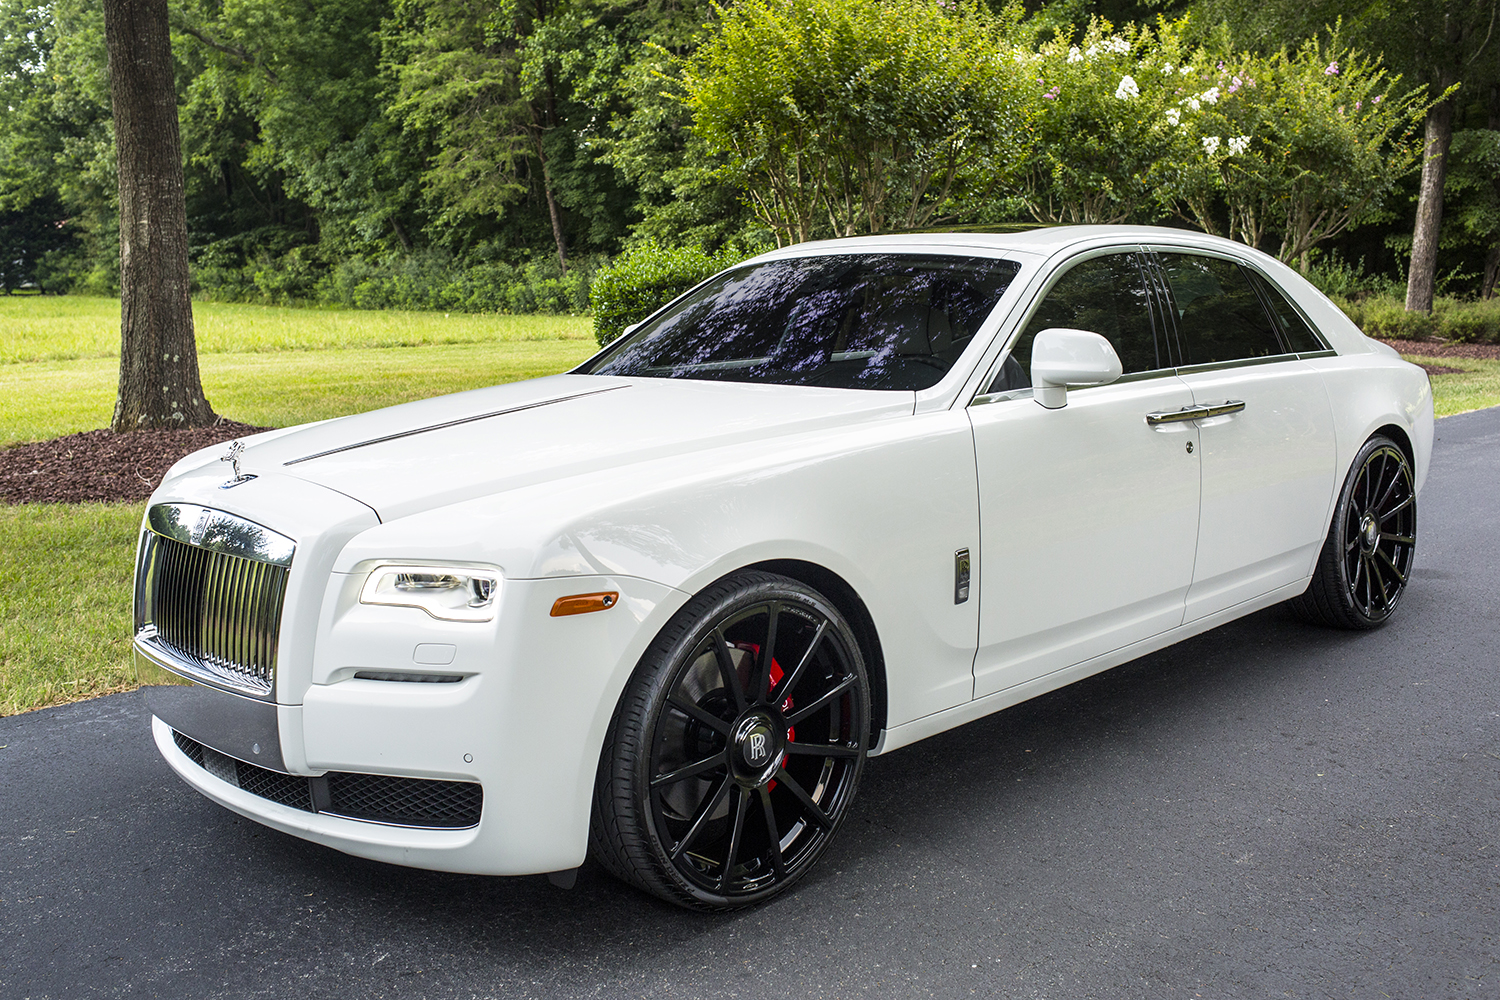 Rolls Royce Ghost White With Black Rims